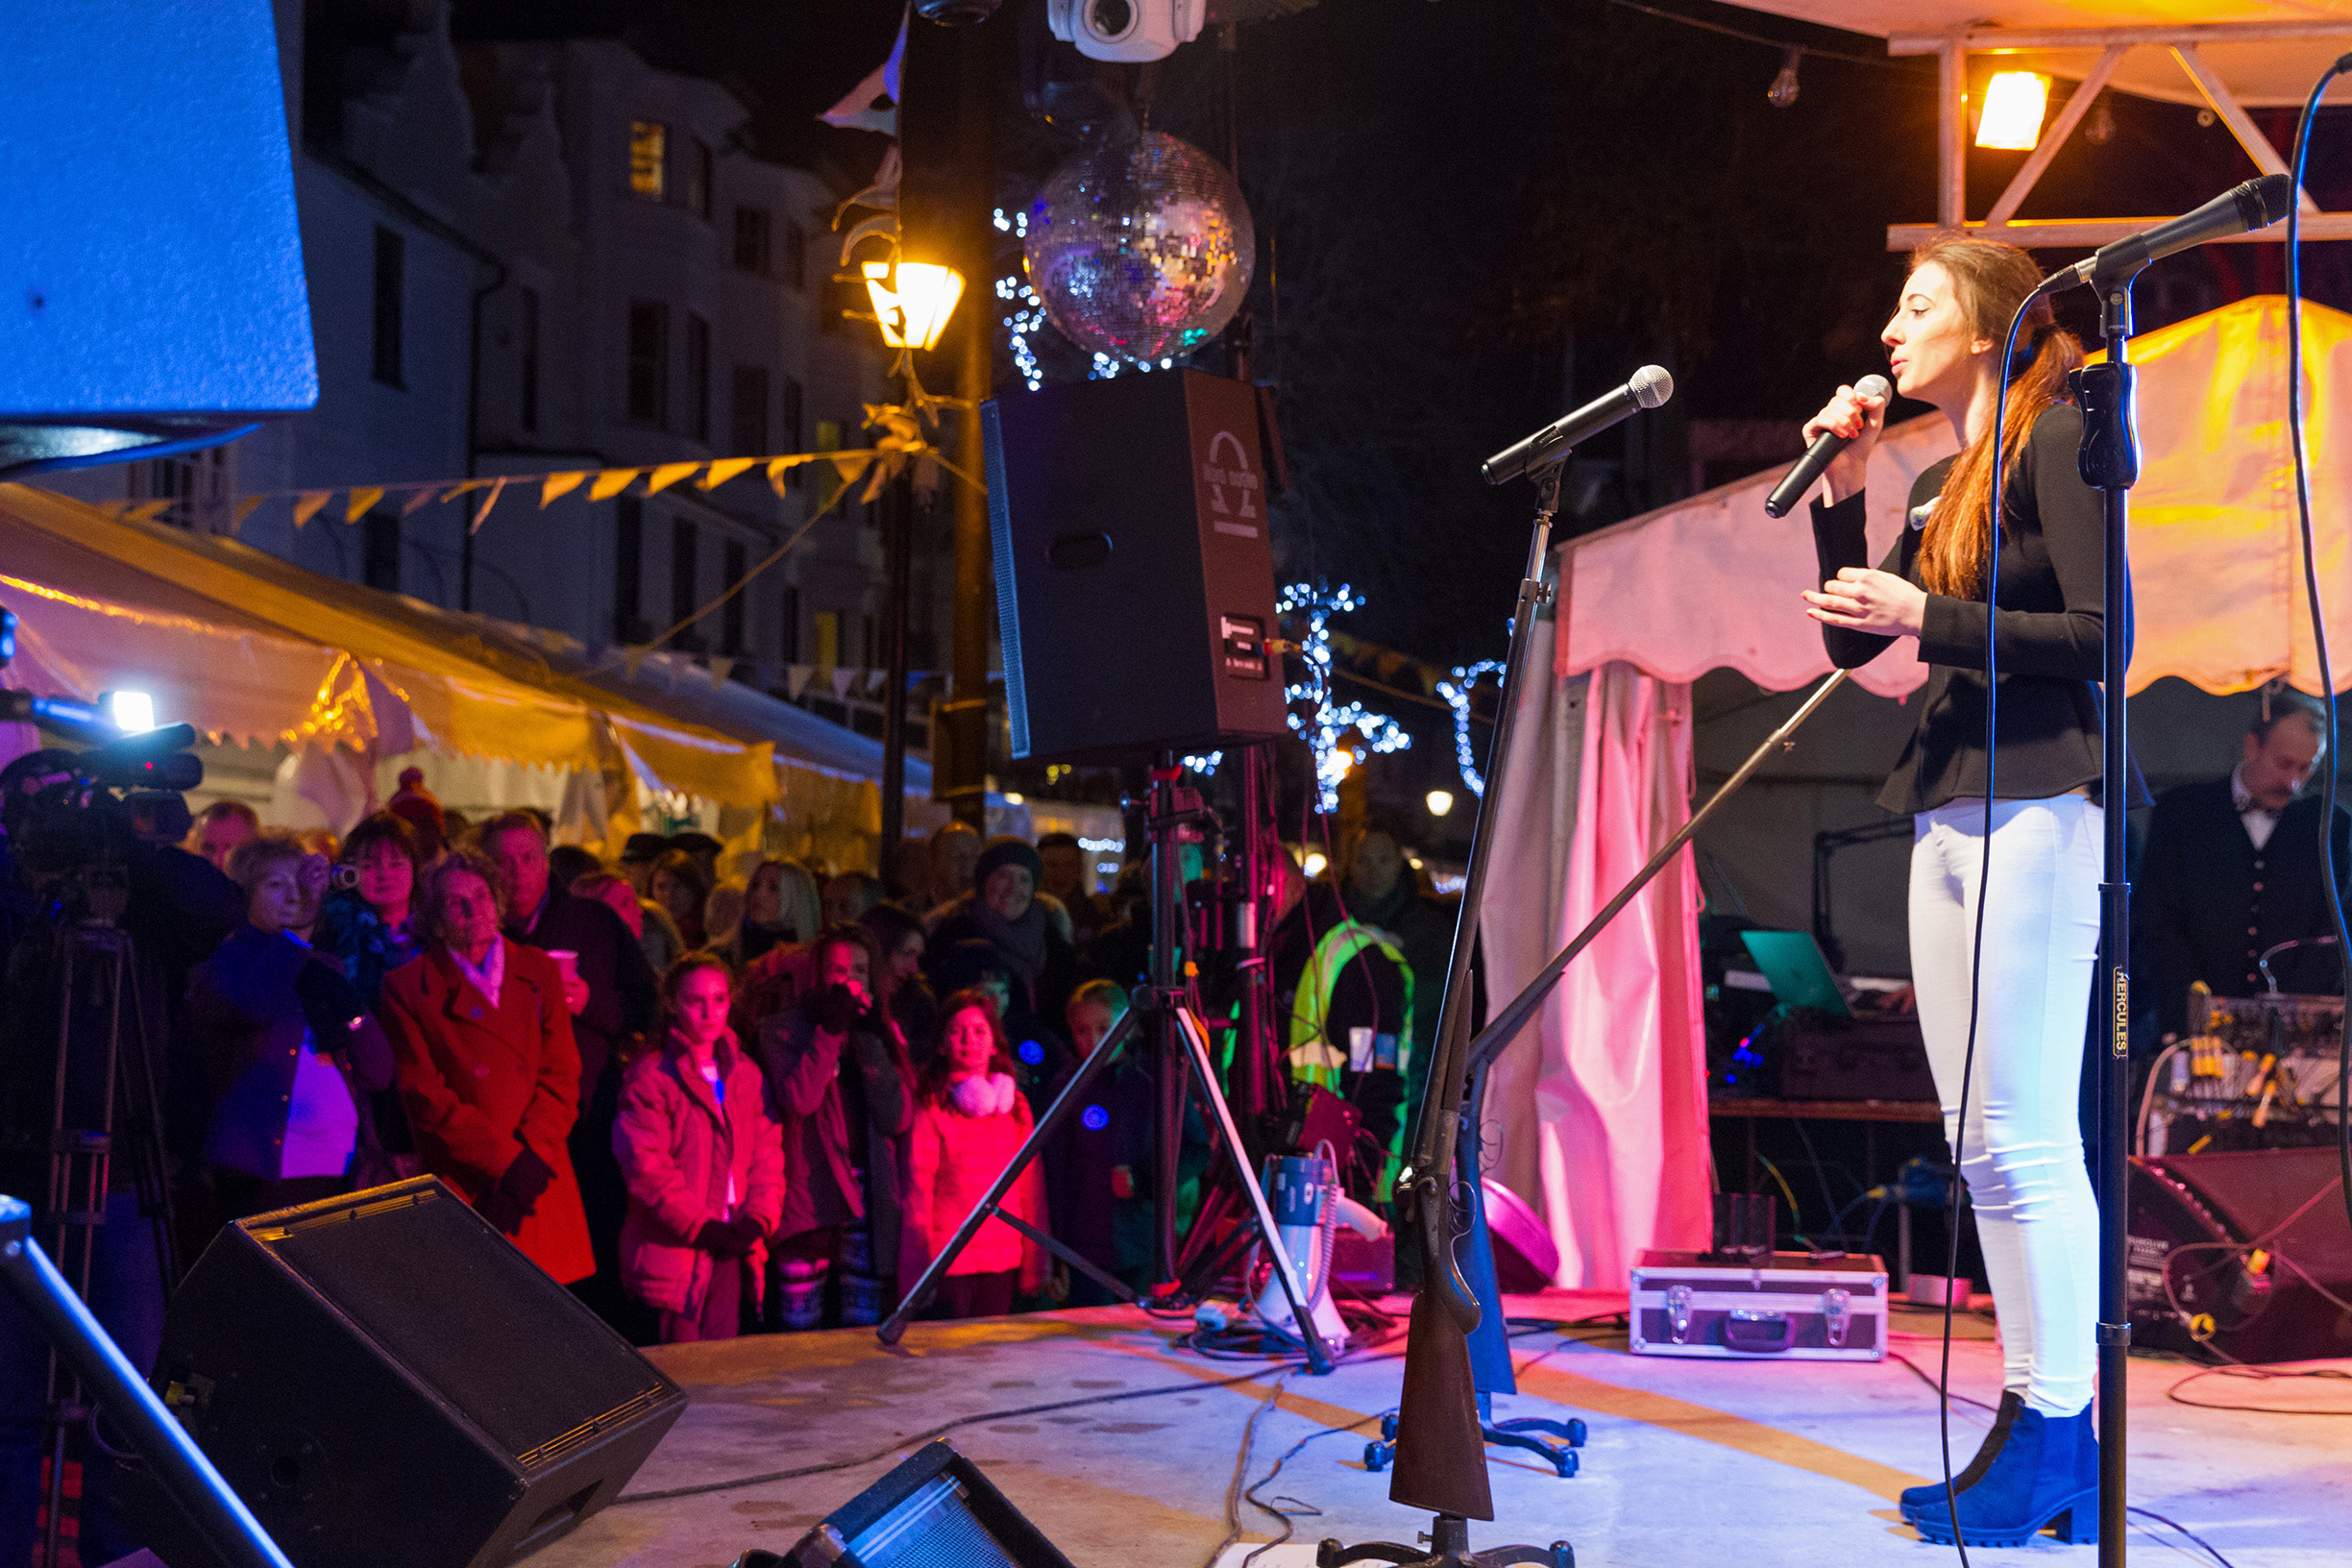 Hug-Many celebrating New Year's Eve on the Pantiles in Tunbridge Wells